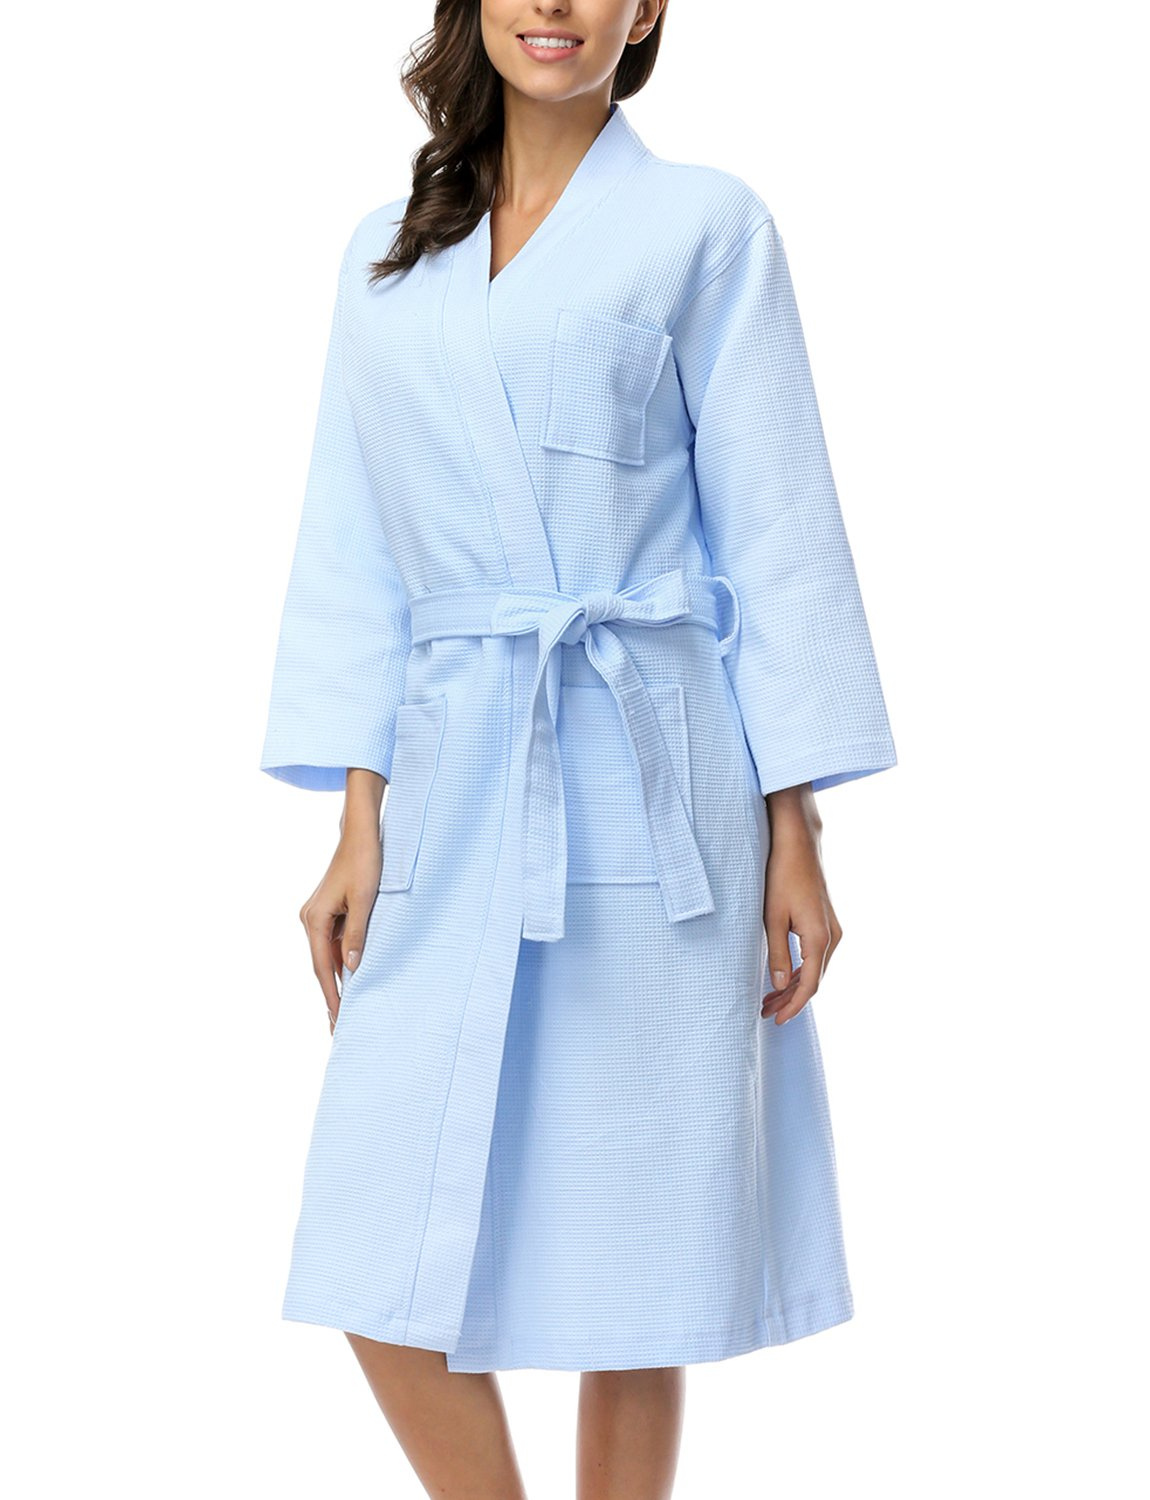 BELLOO Women Cotton Waffle Bathrobe Light Weight Dressing Gown